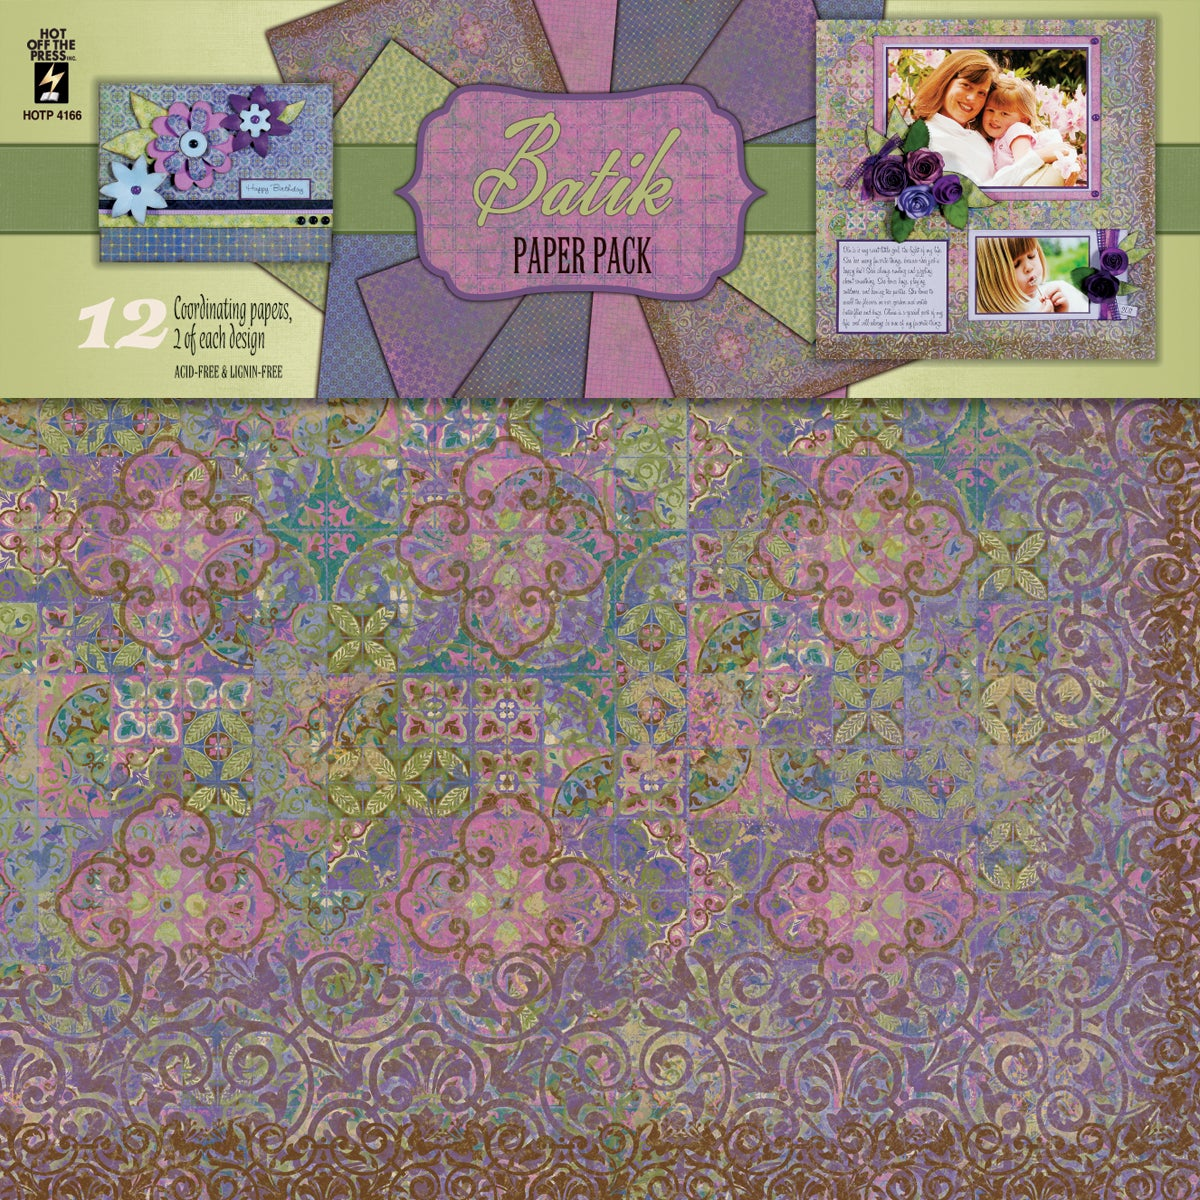 Hot off the Press Batik Paper Pack (Pack of 12)